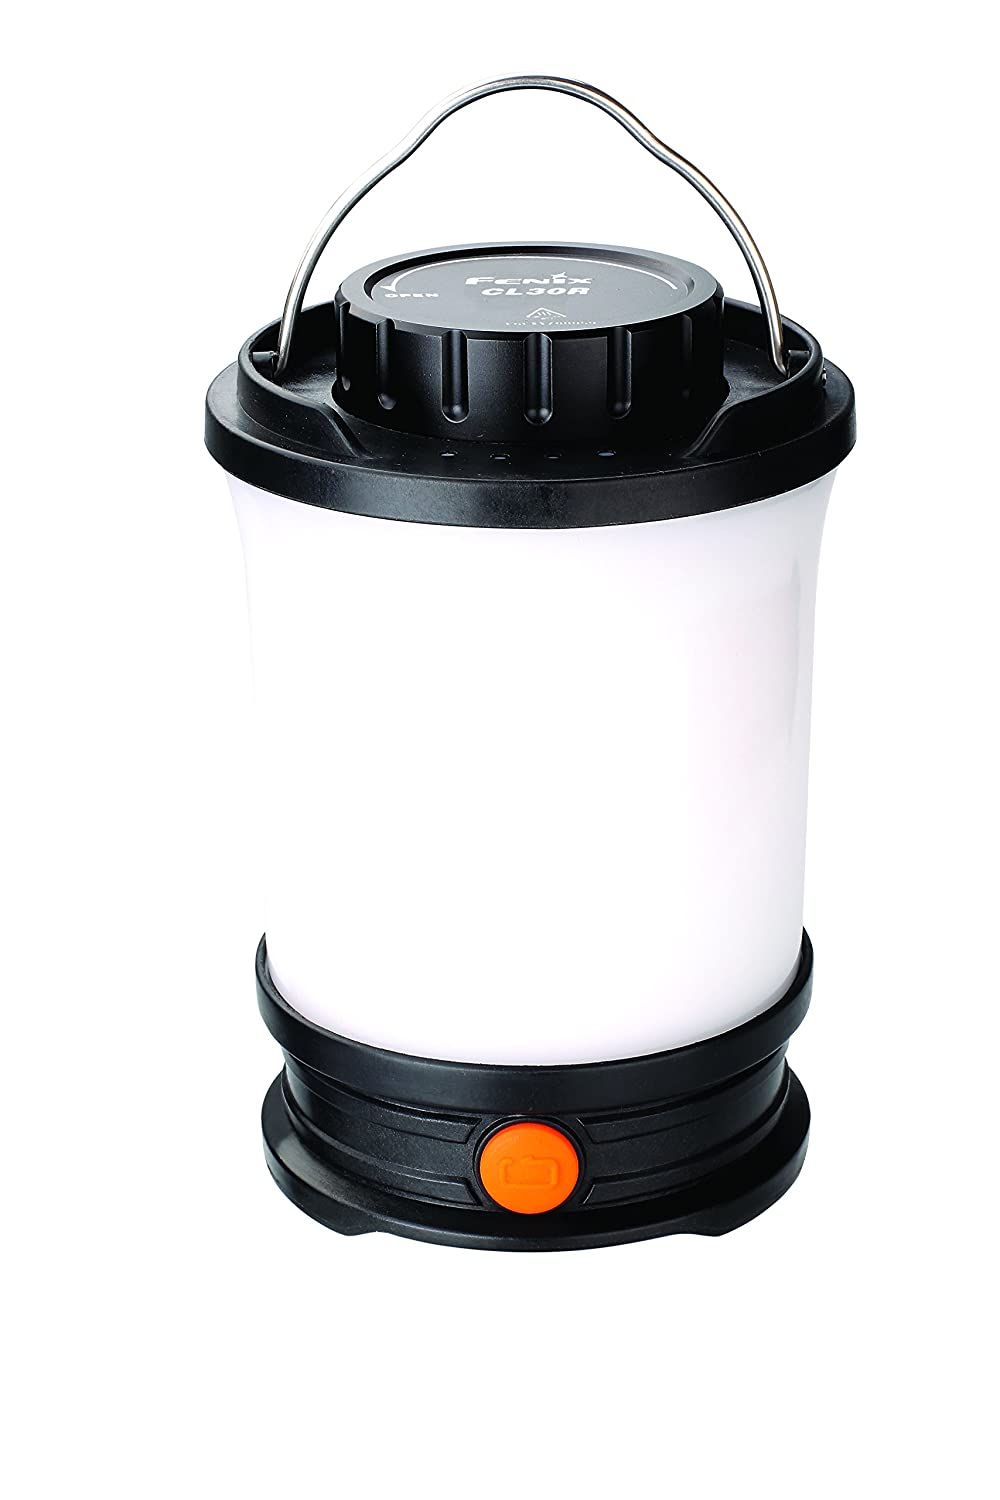 Fenix Flashlights CL30R Camping Lantern, Black